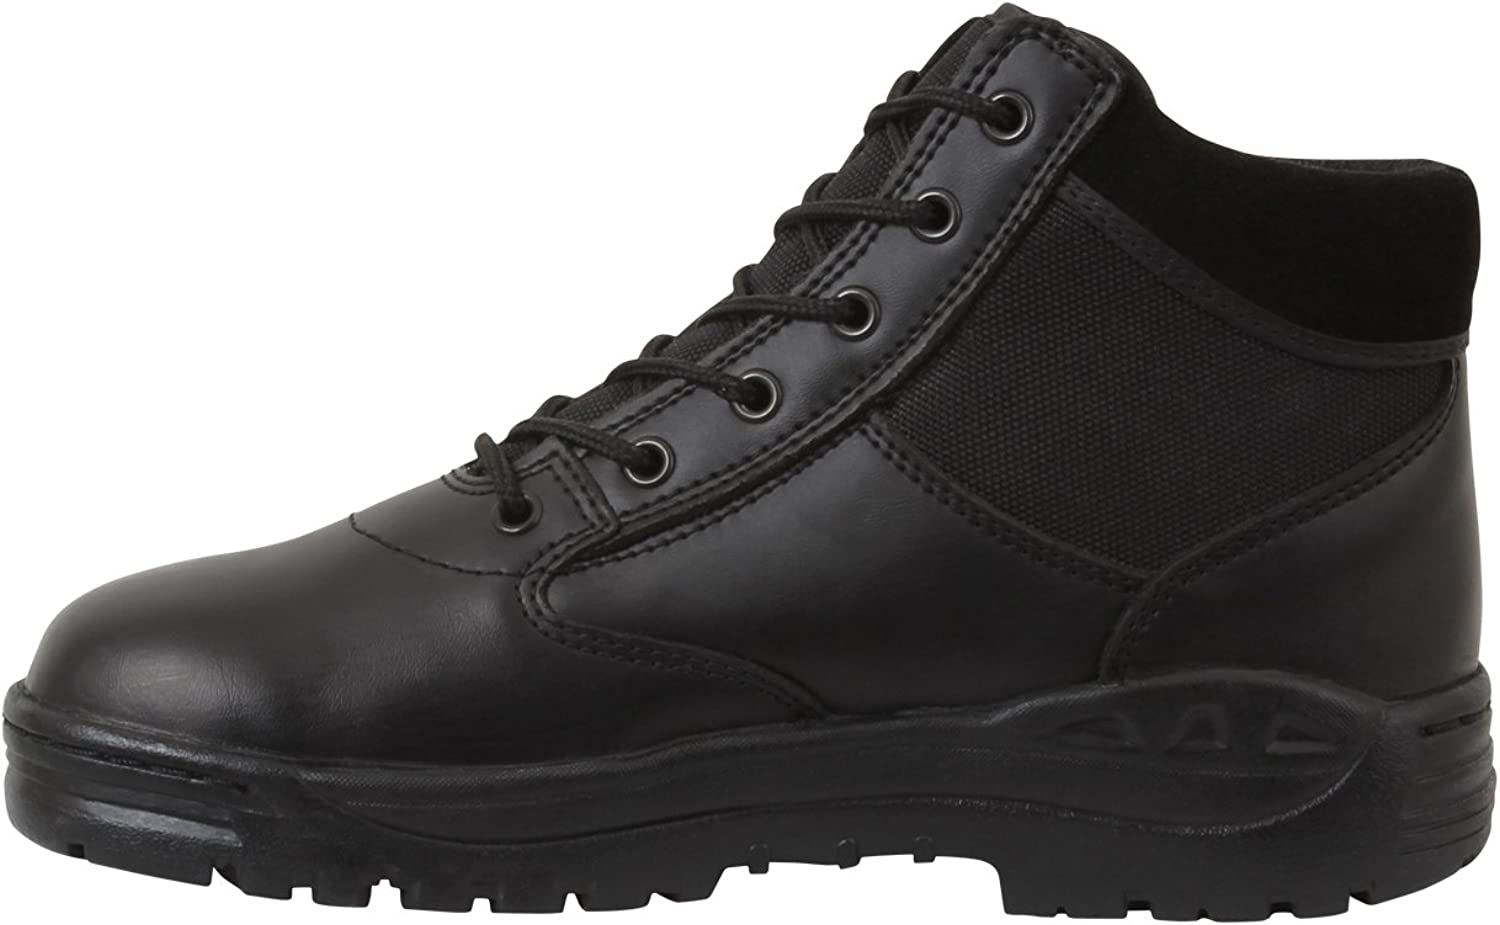 redhco 6'' Forced Entry Tactical Boot